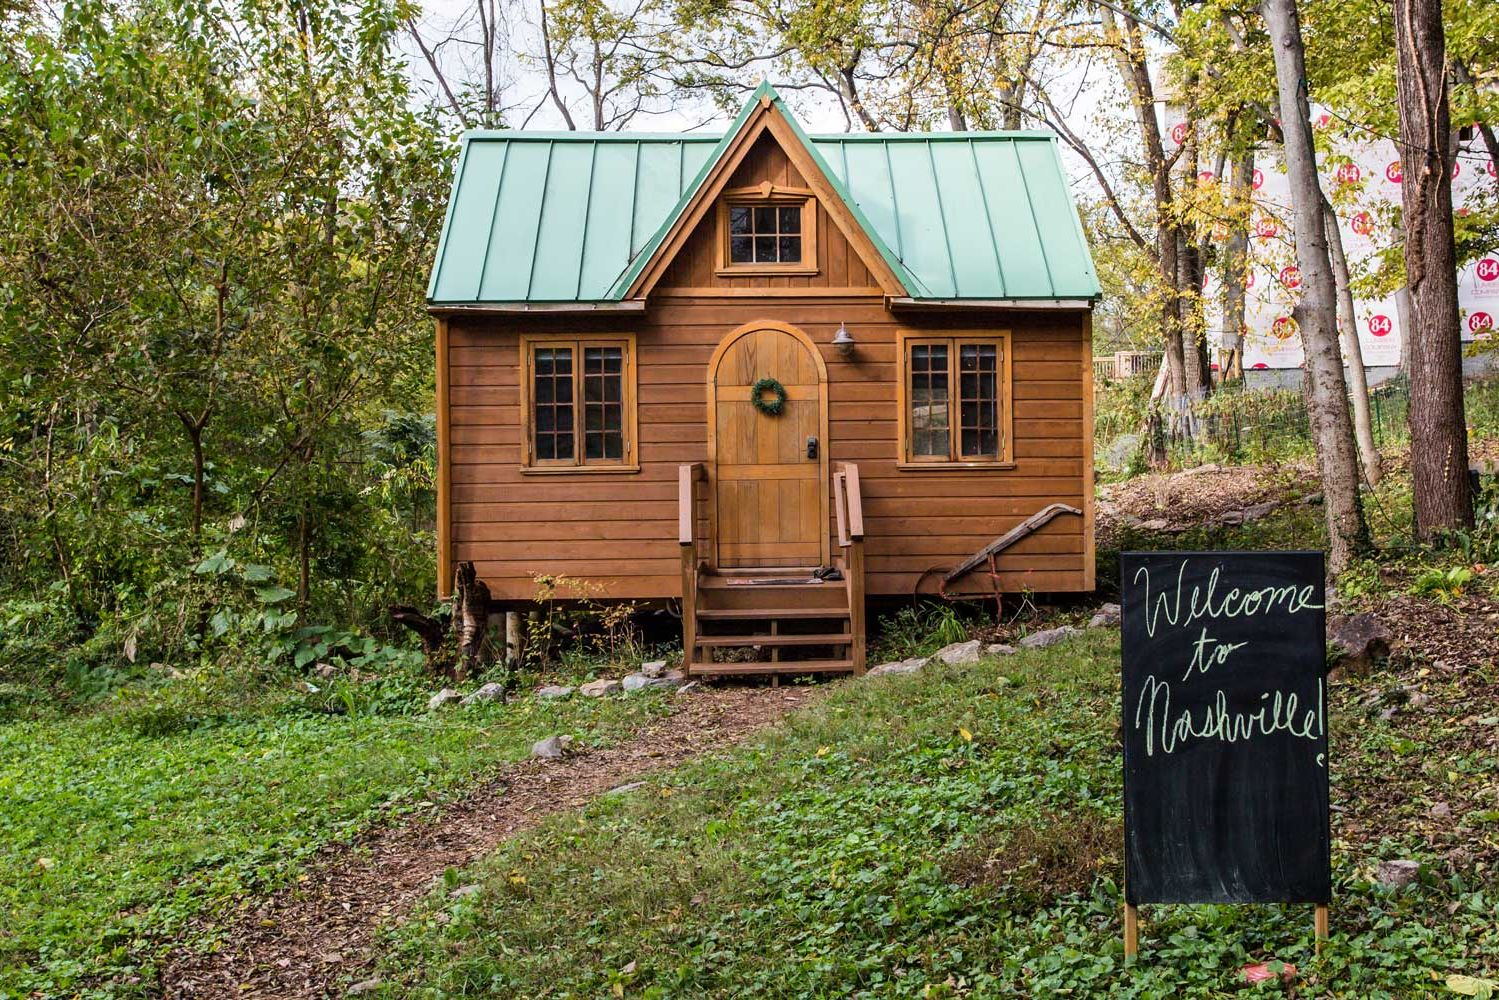 This 300-Square-Foot House Is the Most Popular Airbnb in Tennessee